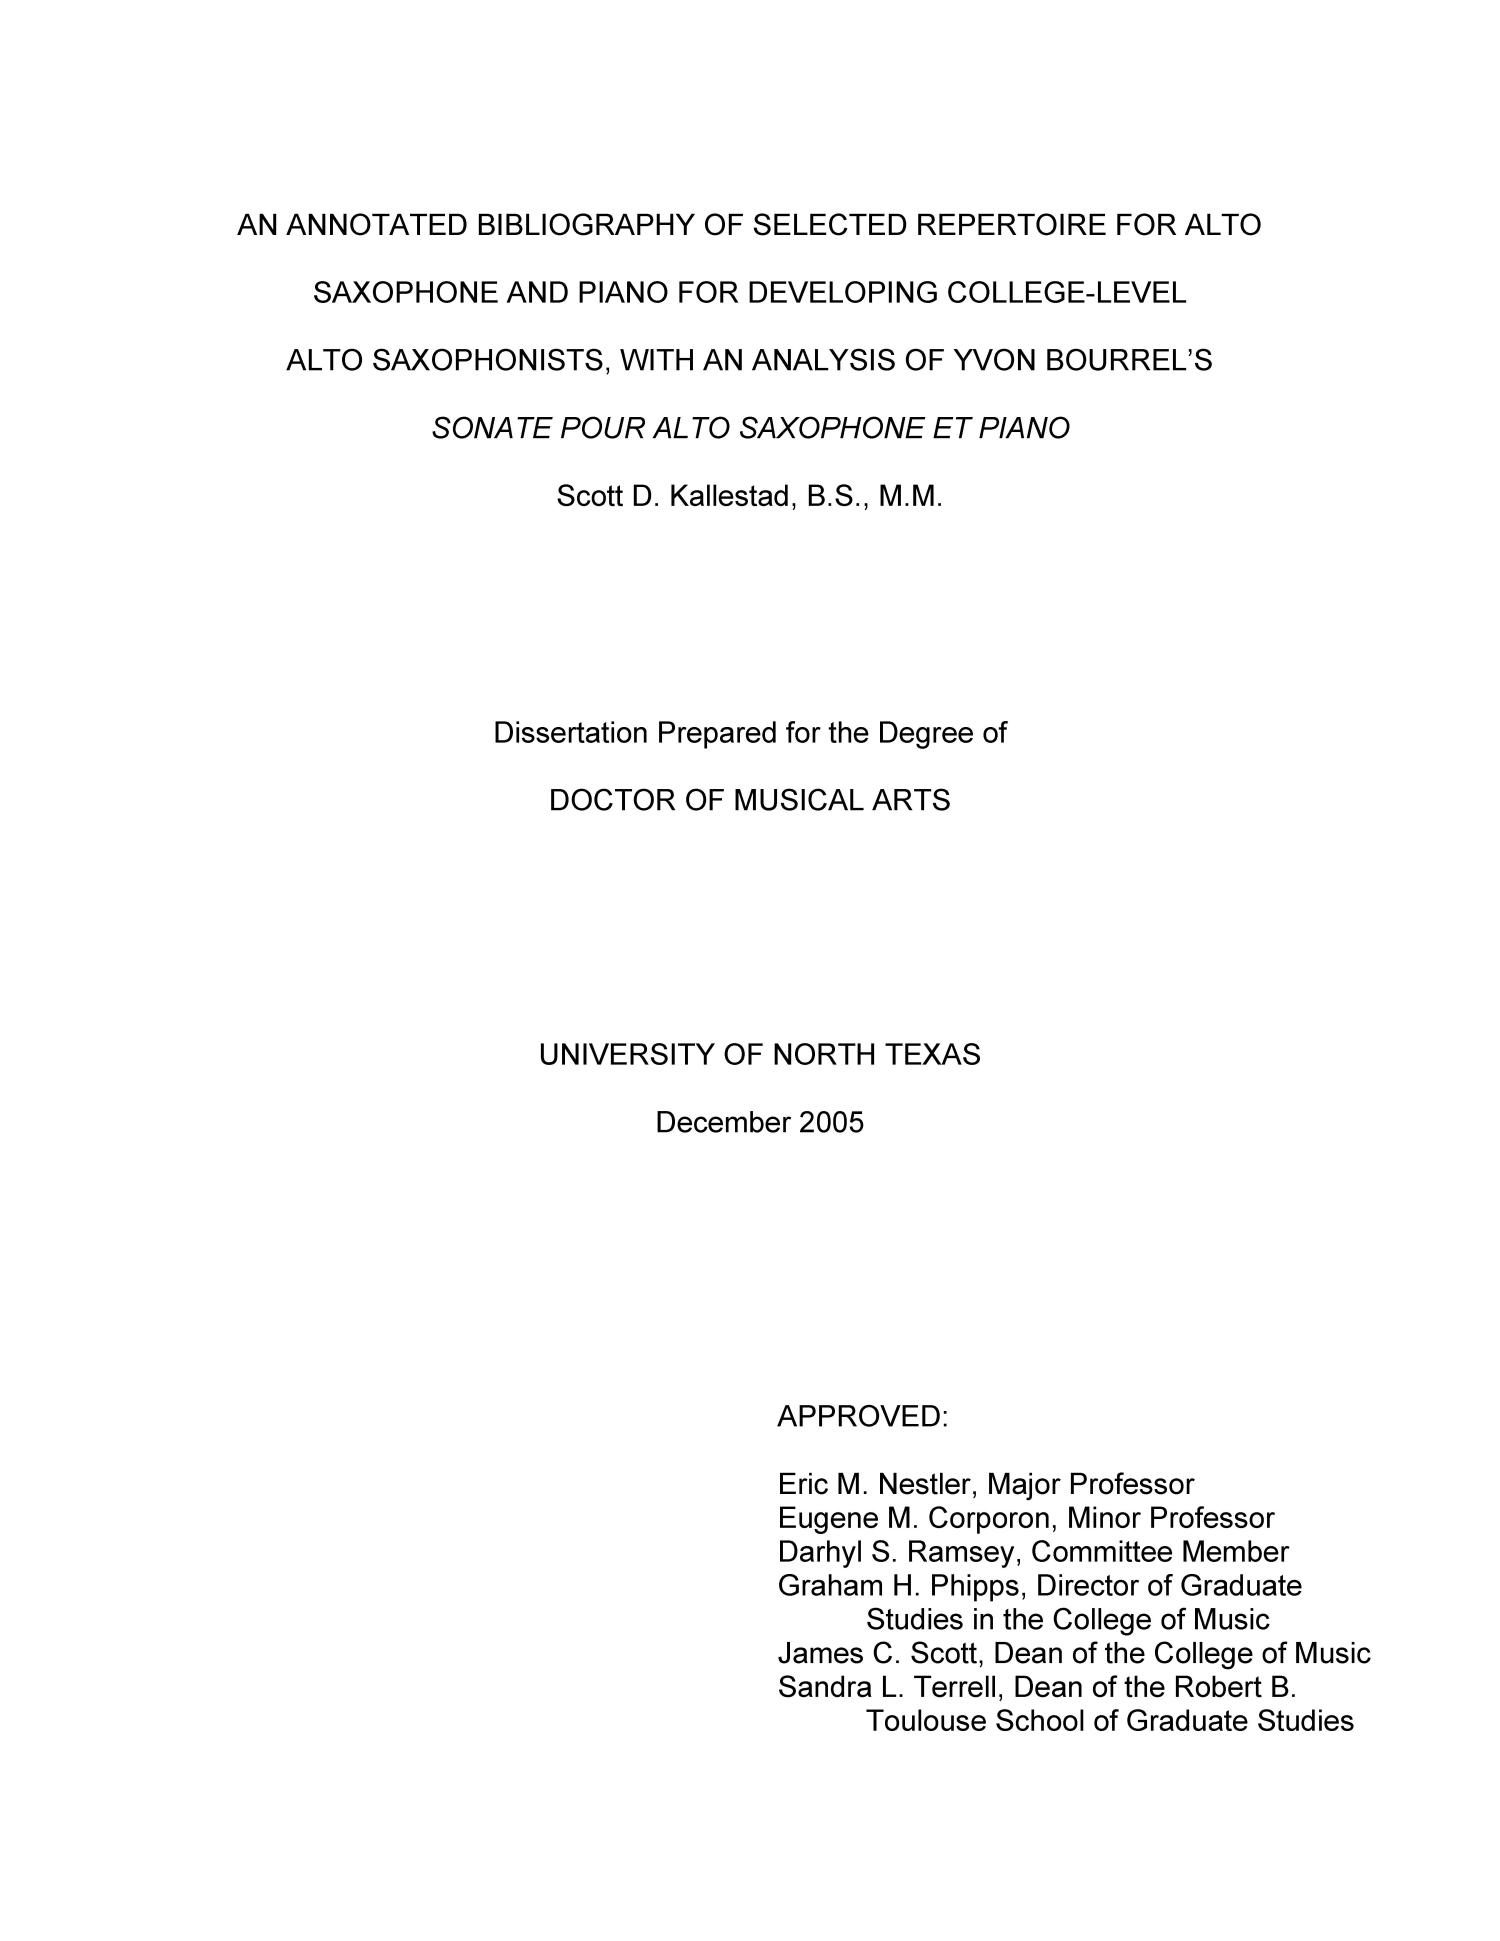 An Annotated Bibliography of Selected Repertoire for Alto